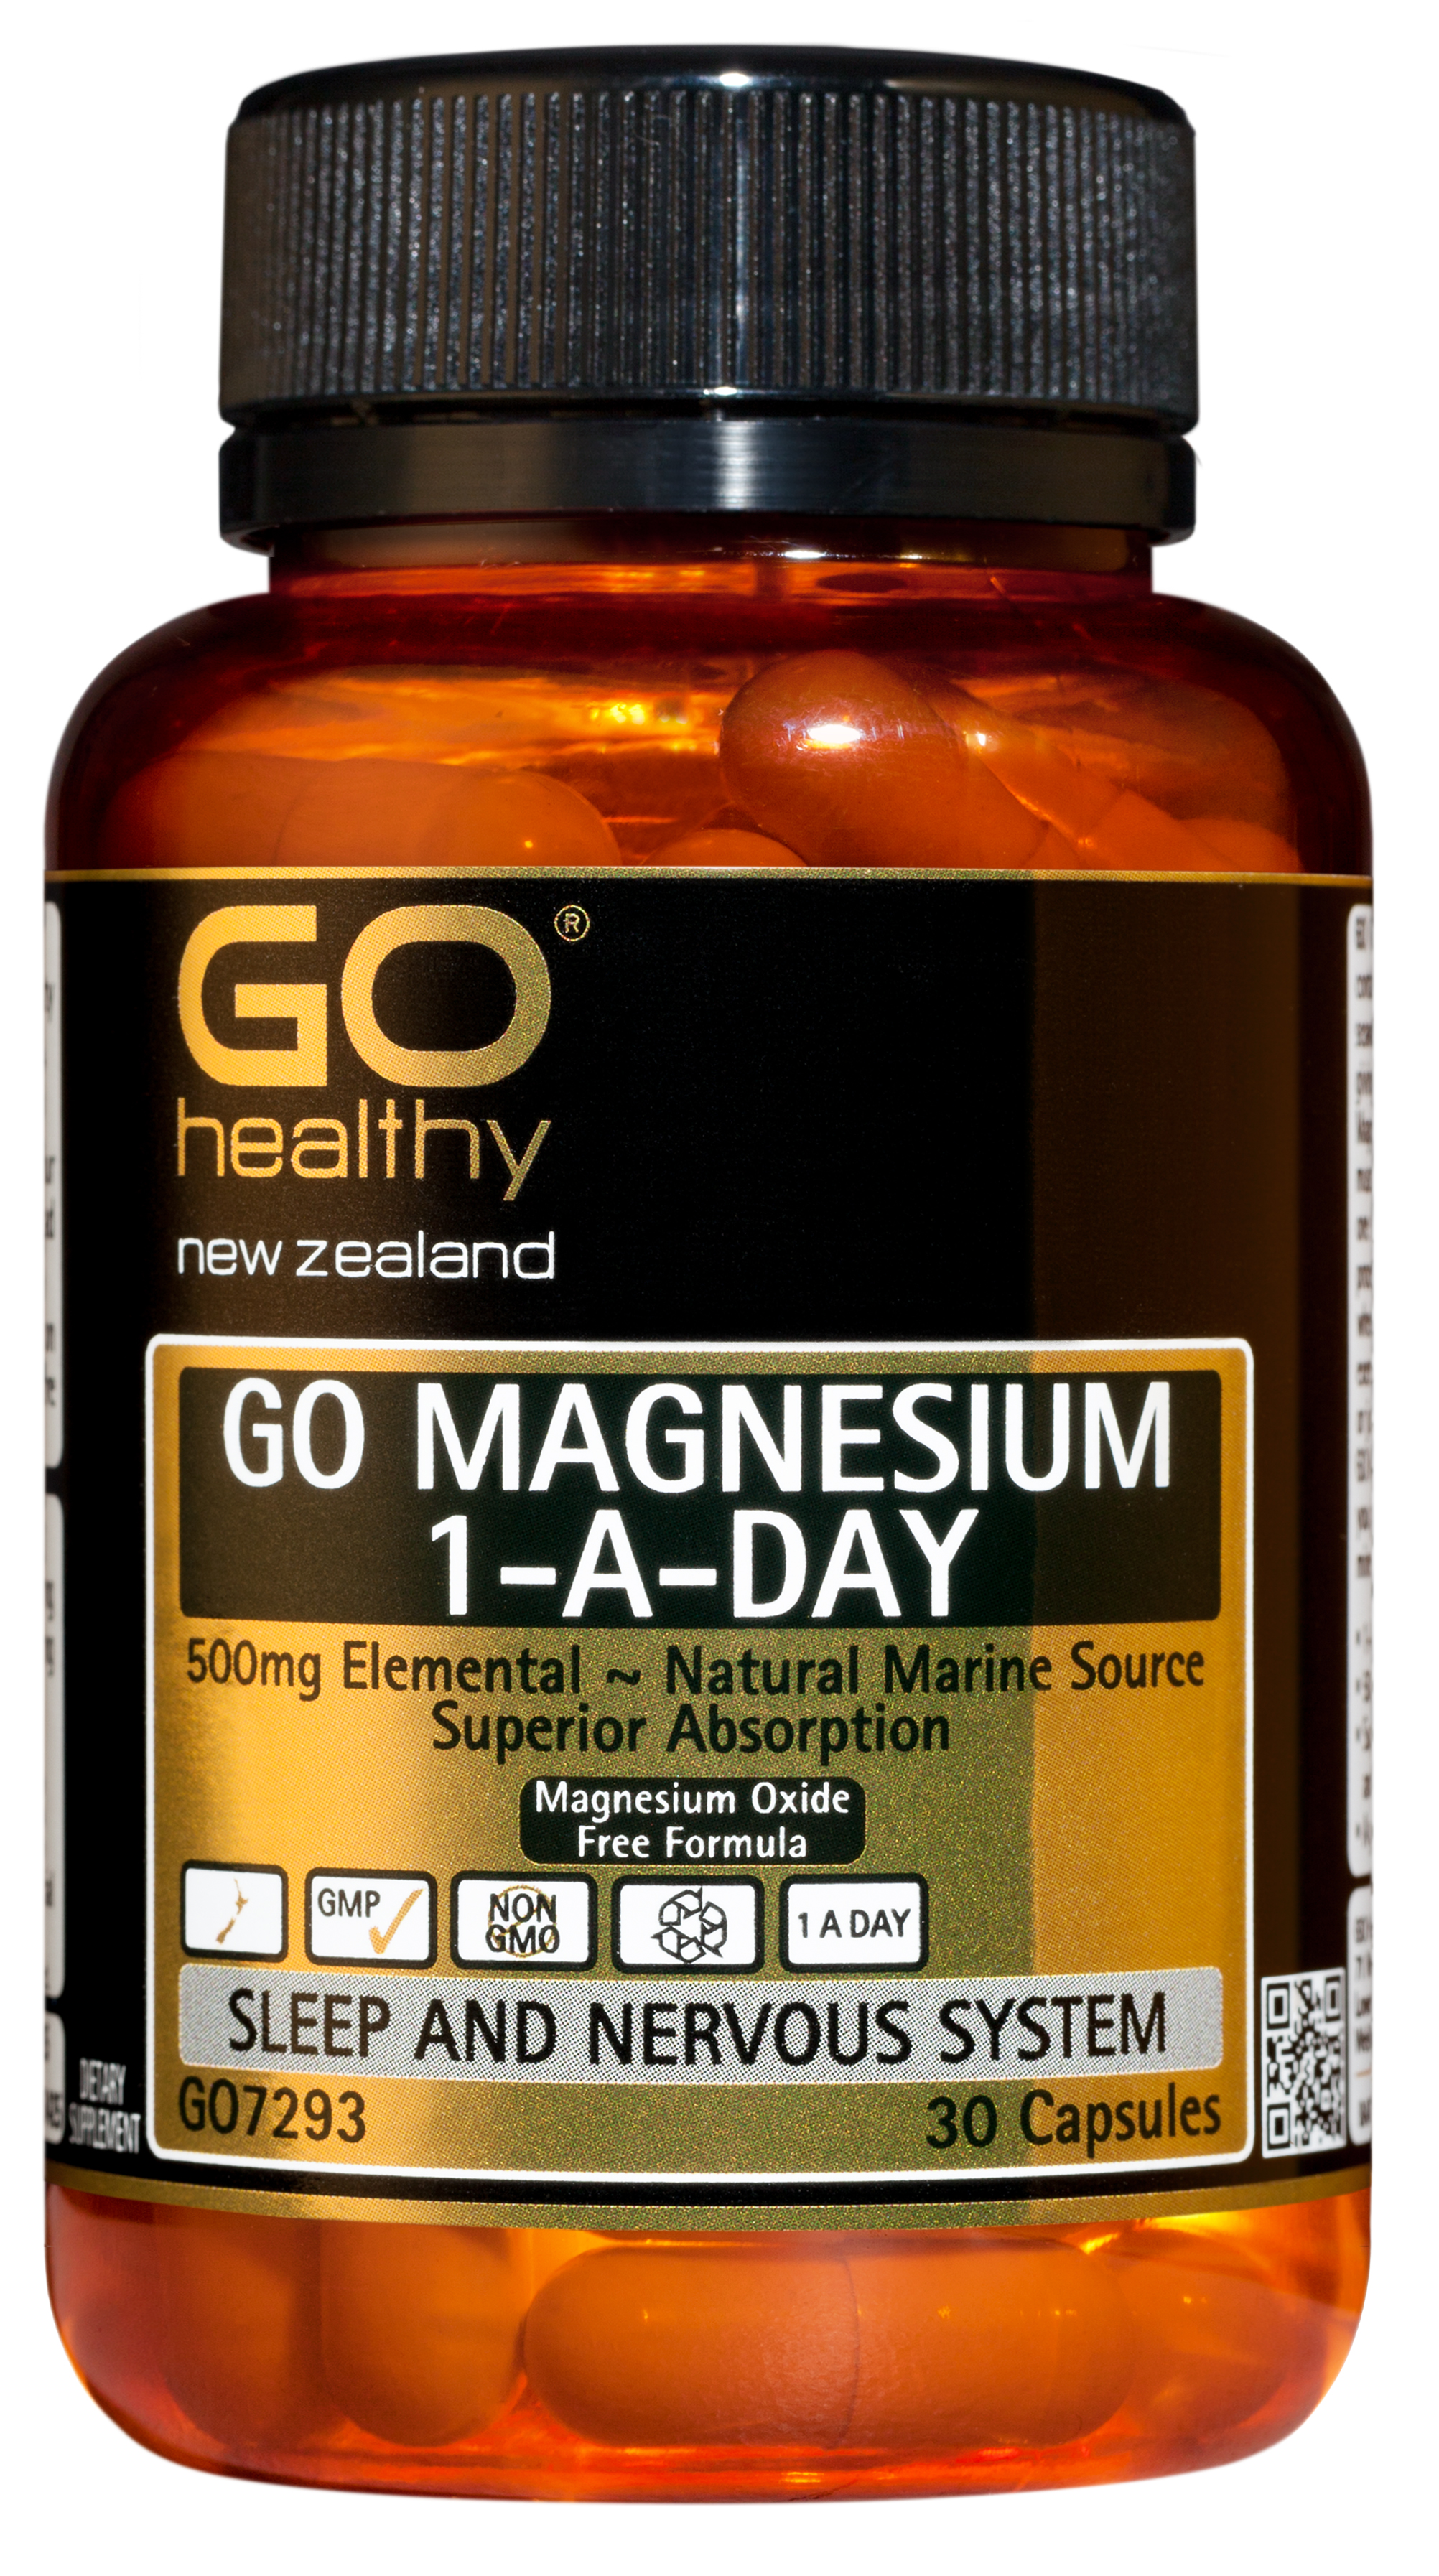 GO Healthy Magnesium 1-A-Day 30 Capsules